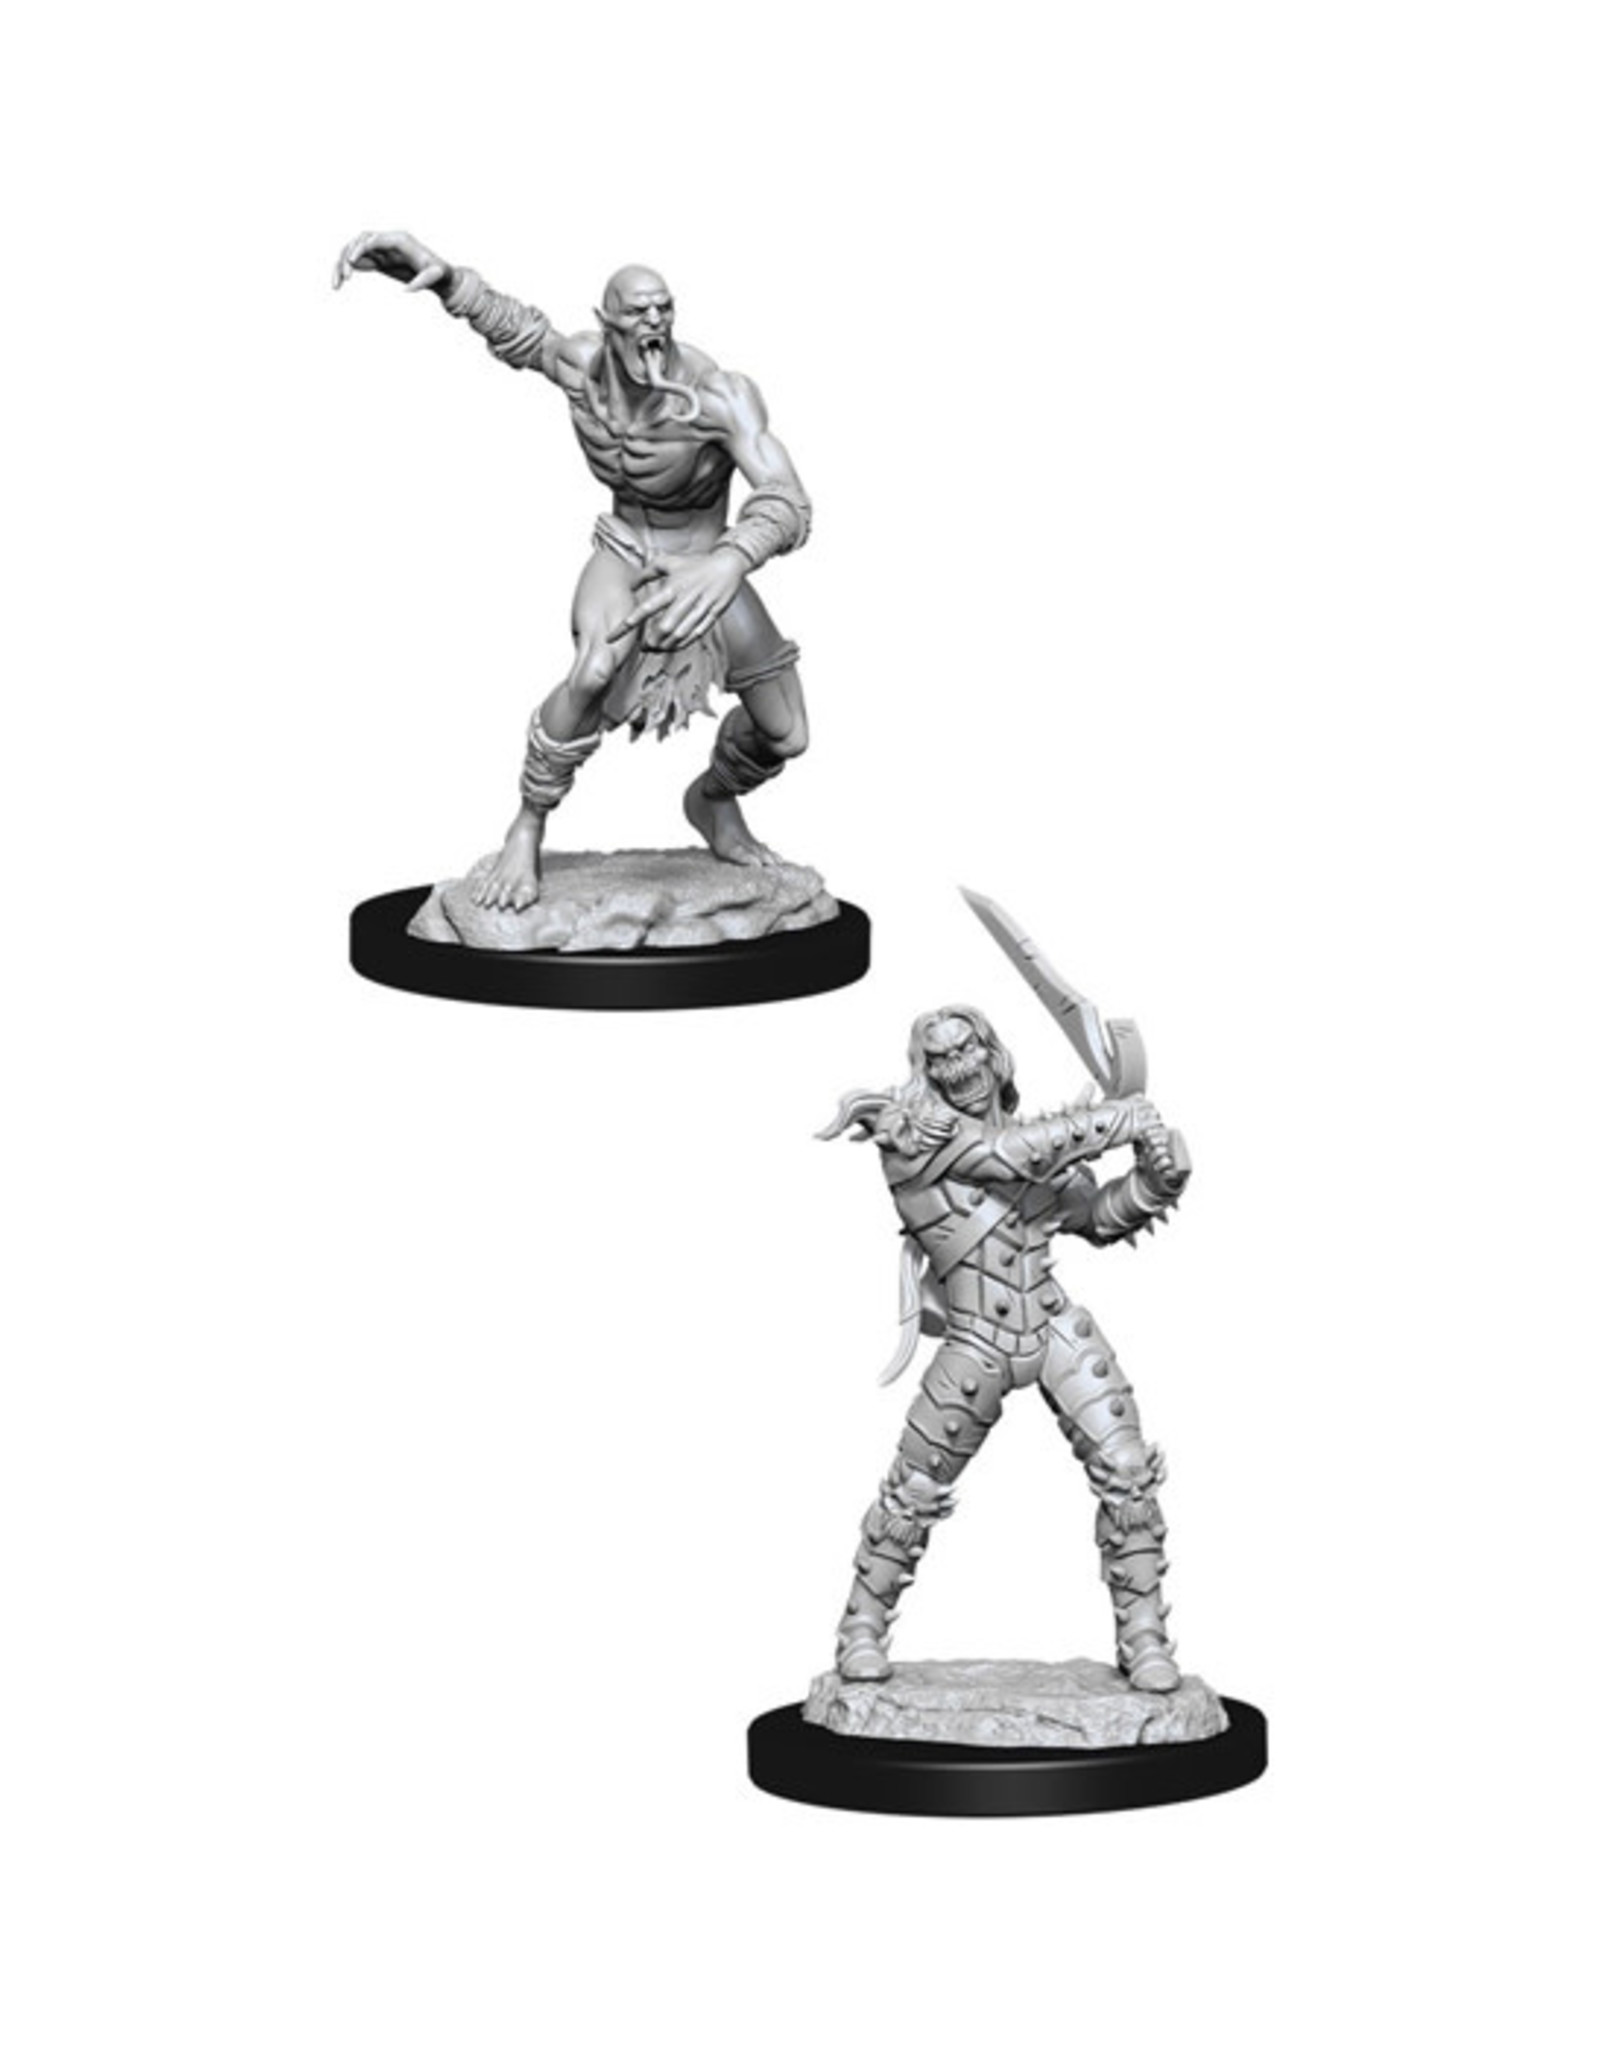 Dungeons & Dragons Dungeons & Dragons: Nolzur's - Wight & Ghast